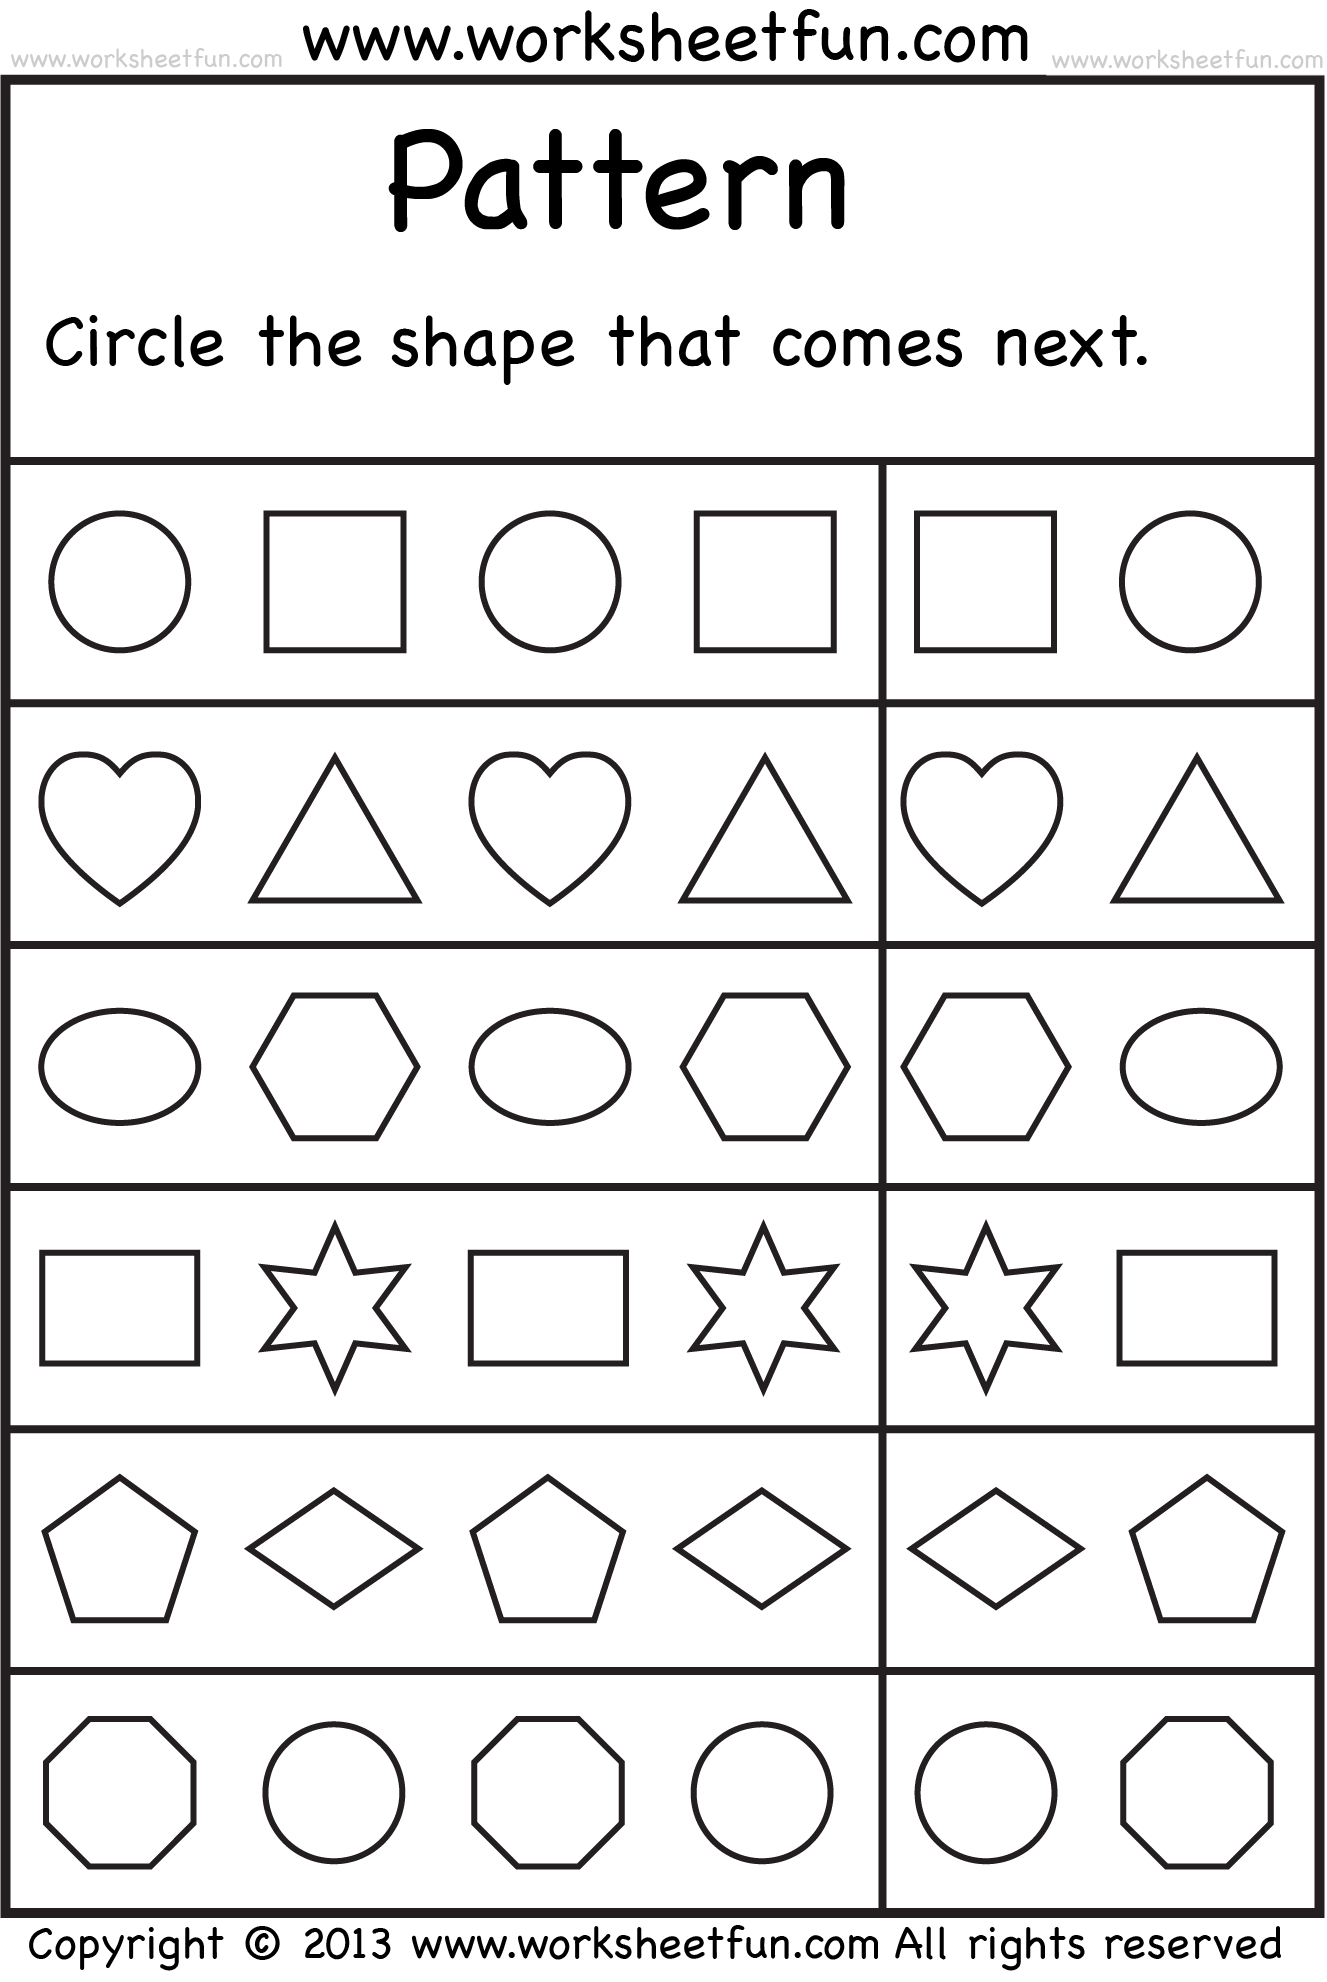 Weirdmailus  Stunning  Images About School Worksheets On Pinterest  Number Words  With Interesting  Images About School Worksheets On Pinterest  Number Words Alphabet Worksheets And Free Printable Kindergarten Worksheets With Amazing Adding Whole Numbers And Decimals Worksheet Also Law Of Sines And Cosines Worksheets In Addition Chinese Character Worksheet Generator And Fun With Math Worksheets As Well As Worksheets On Factors And Multiples Additionally Sports Worksheets For Kids From Pinterestcom With Weirdmailus  Interesting  Images About School Worksheets On Pinterest  Number Words  With Amazing  Images About School Worksheets On Pinterest  Number Words Alphabet Worksheets And Free Printable Kindergarten Worksheets And Stunning Adding Whole Numbers And Decimals Worksheet Also Law Of Sines And Cosines Worksheets In Addition Chinese Character Worksheet Generator From Pinterestcom